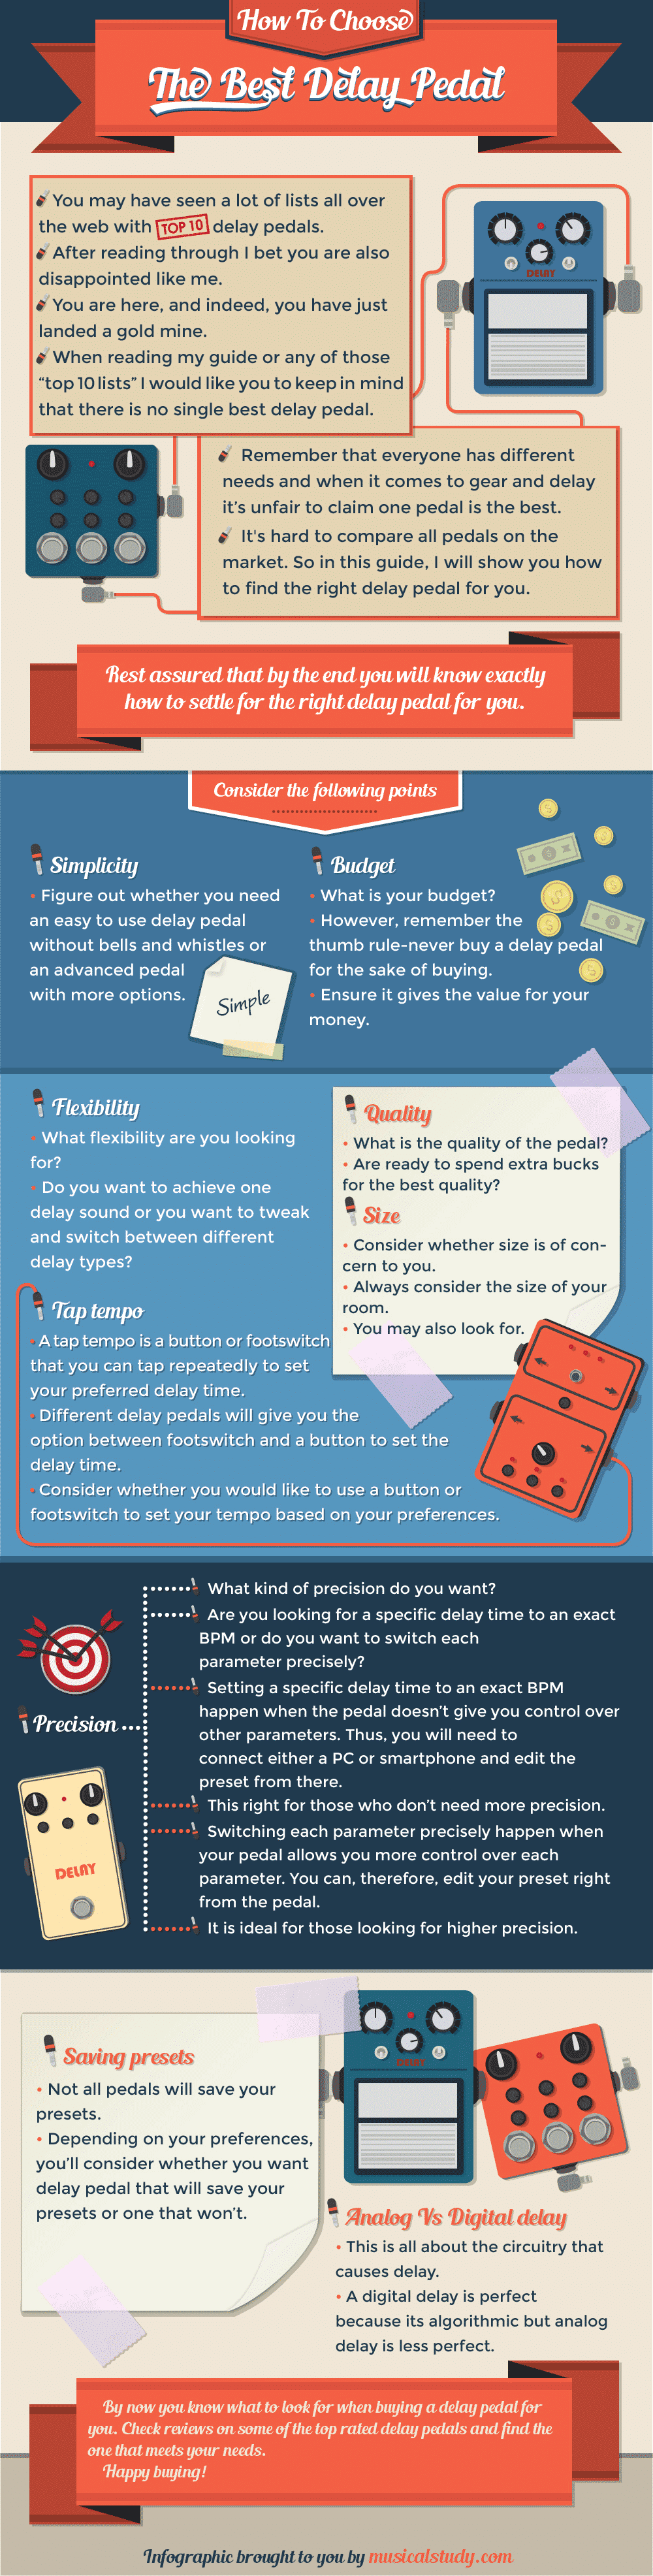 Best Delay Pedal Infographic